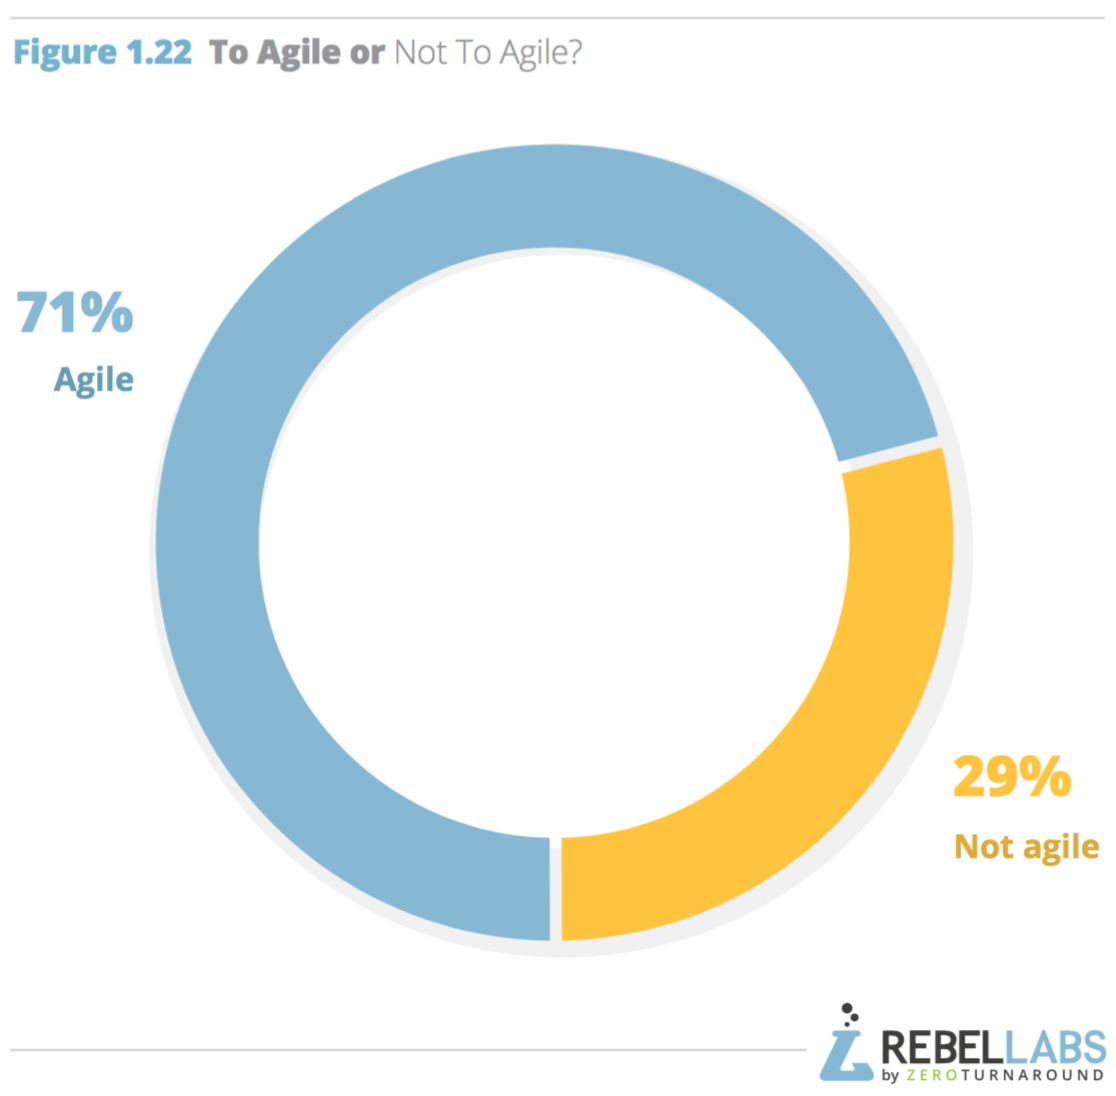 chart breakdown of respondents who consider themselves agile or not